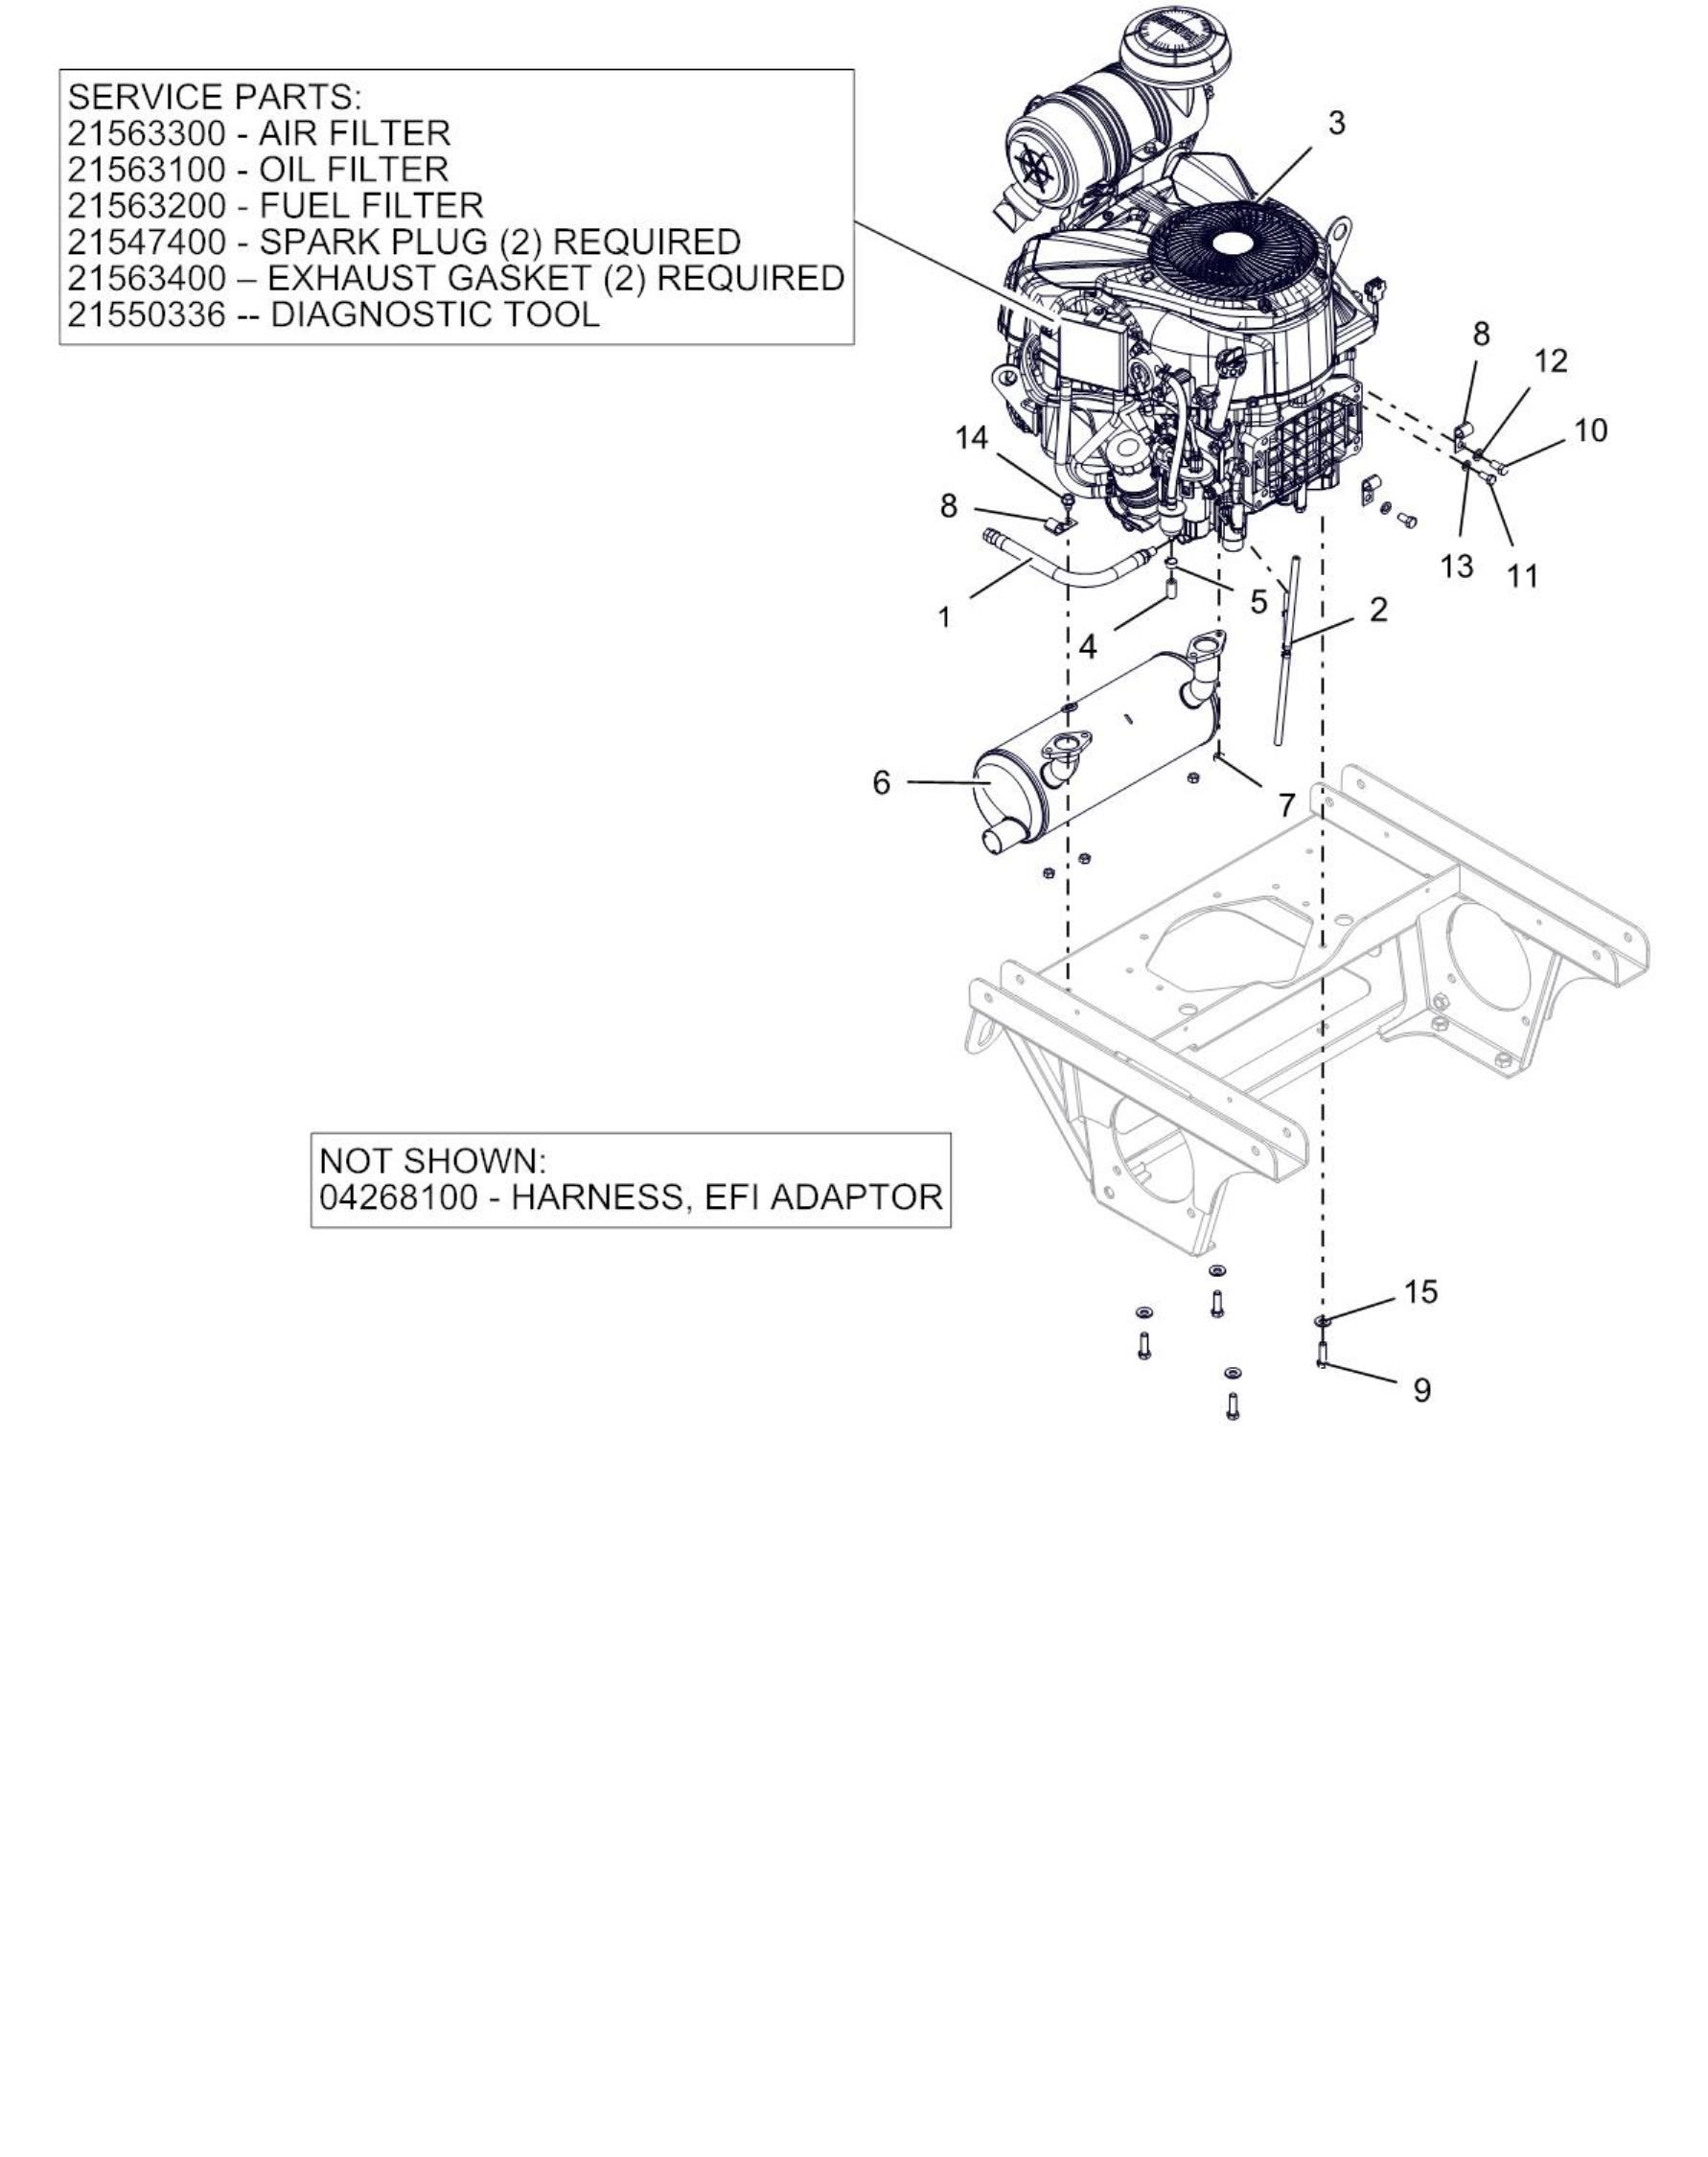 Brush Hog Parts Diagram together with Generac 4000xl 97771 Portable Generator Parts C 200255 200256 205985 also Ford Finish Mower Parts Diagram together with Honda Riding Mower Ignition Diagram additionally Wiring Diagram For Bad Boy Mower. on land pride wiring diagram